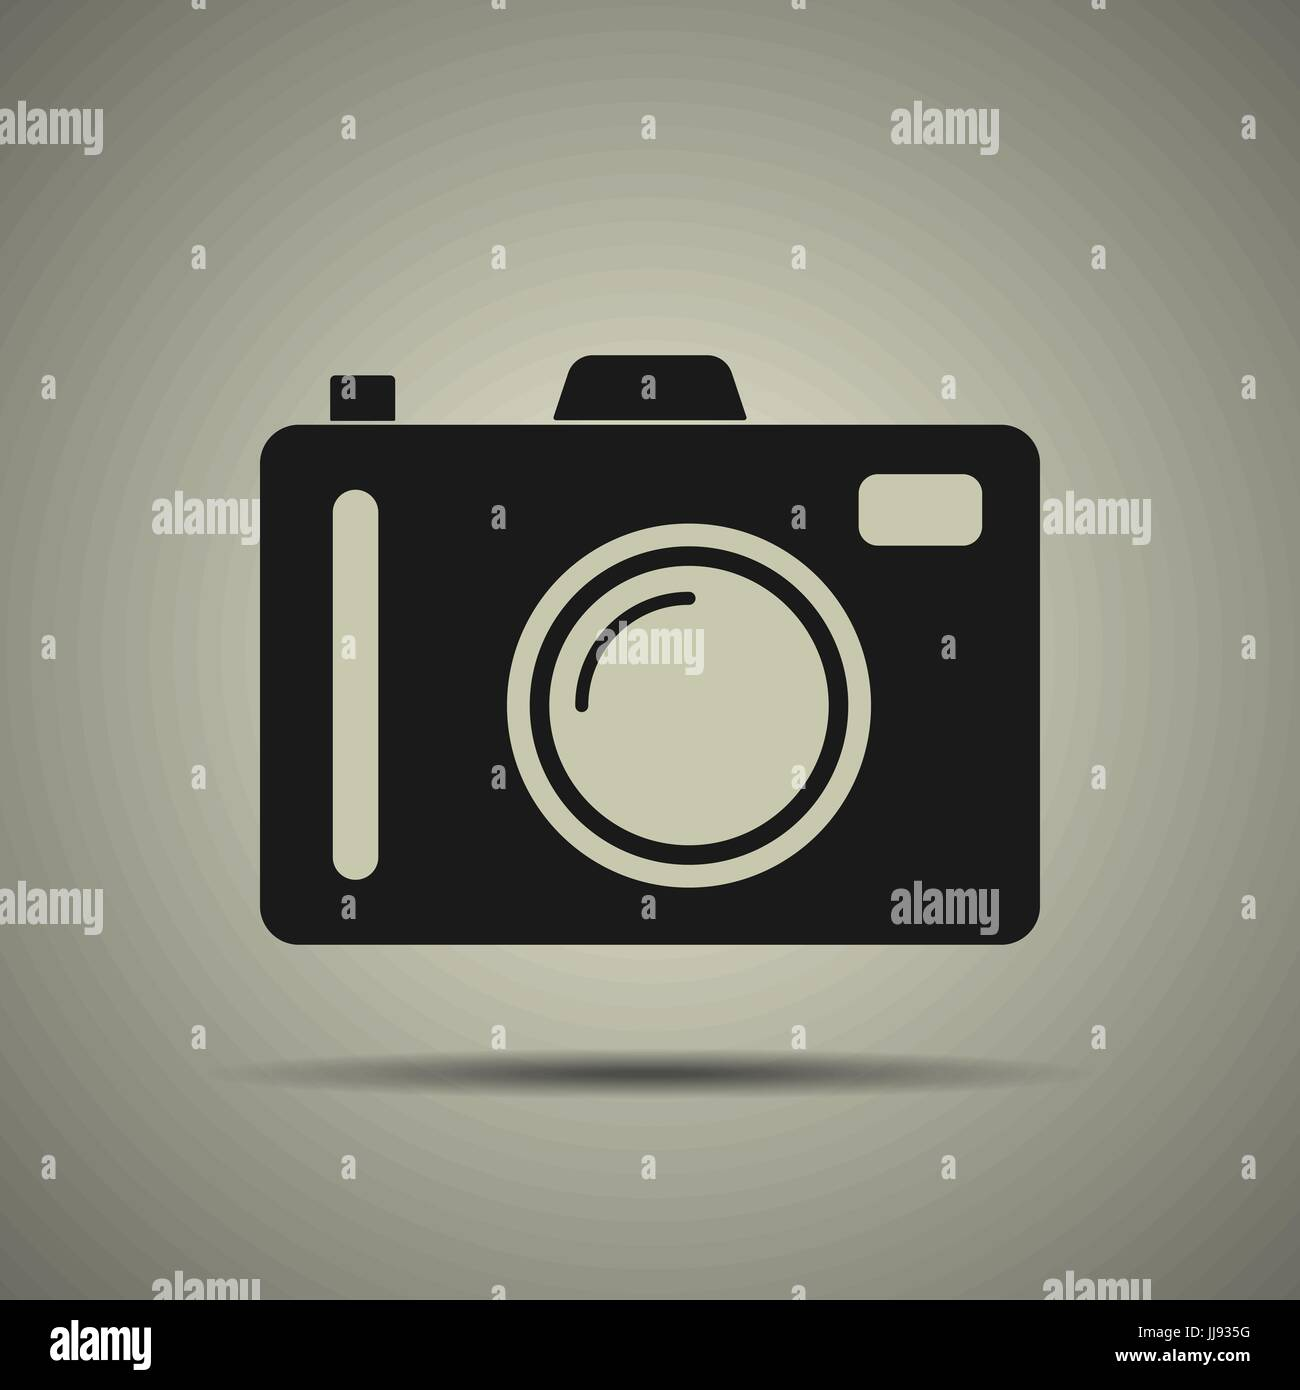 Camera icon in flat style, black and white colors, isolated - Stock Image